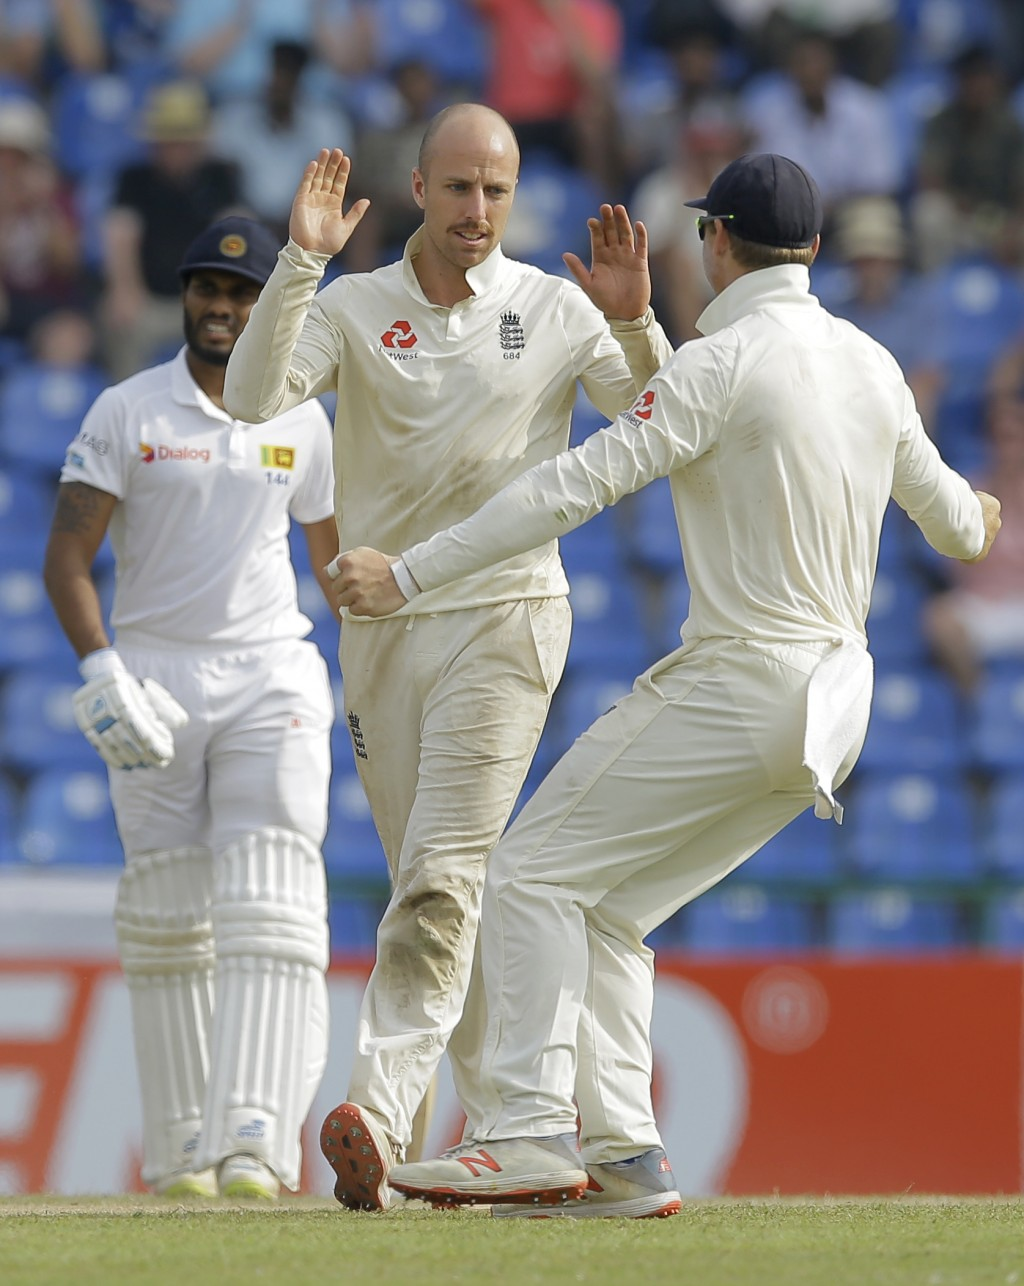 England's Jack Leach, center, celebrates the wicket of Sri Lanka's Dilruwan Perera with teammates during the second day of the second test cricket mat...